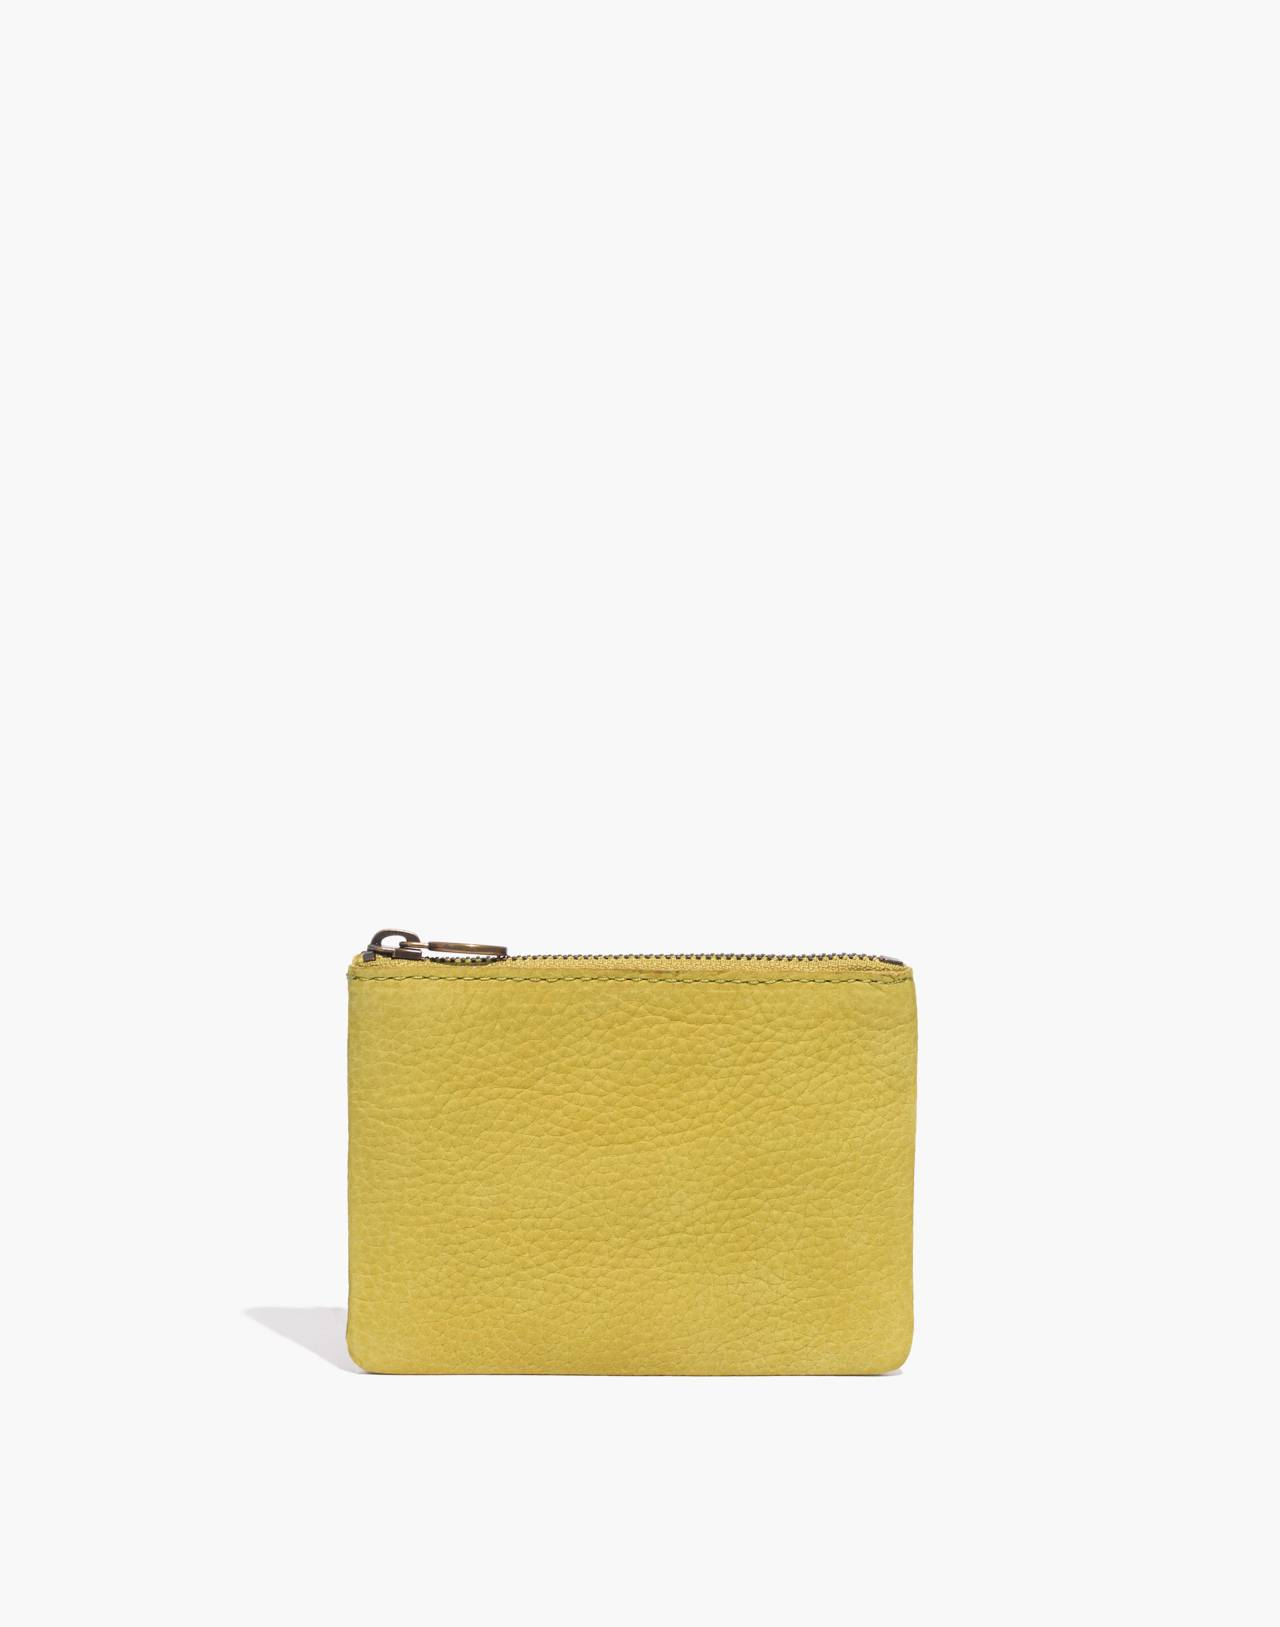 The Leather Pouch Wallet in vintage chartreuse image 1